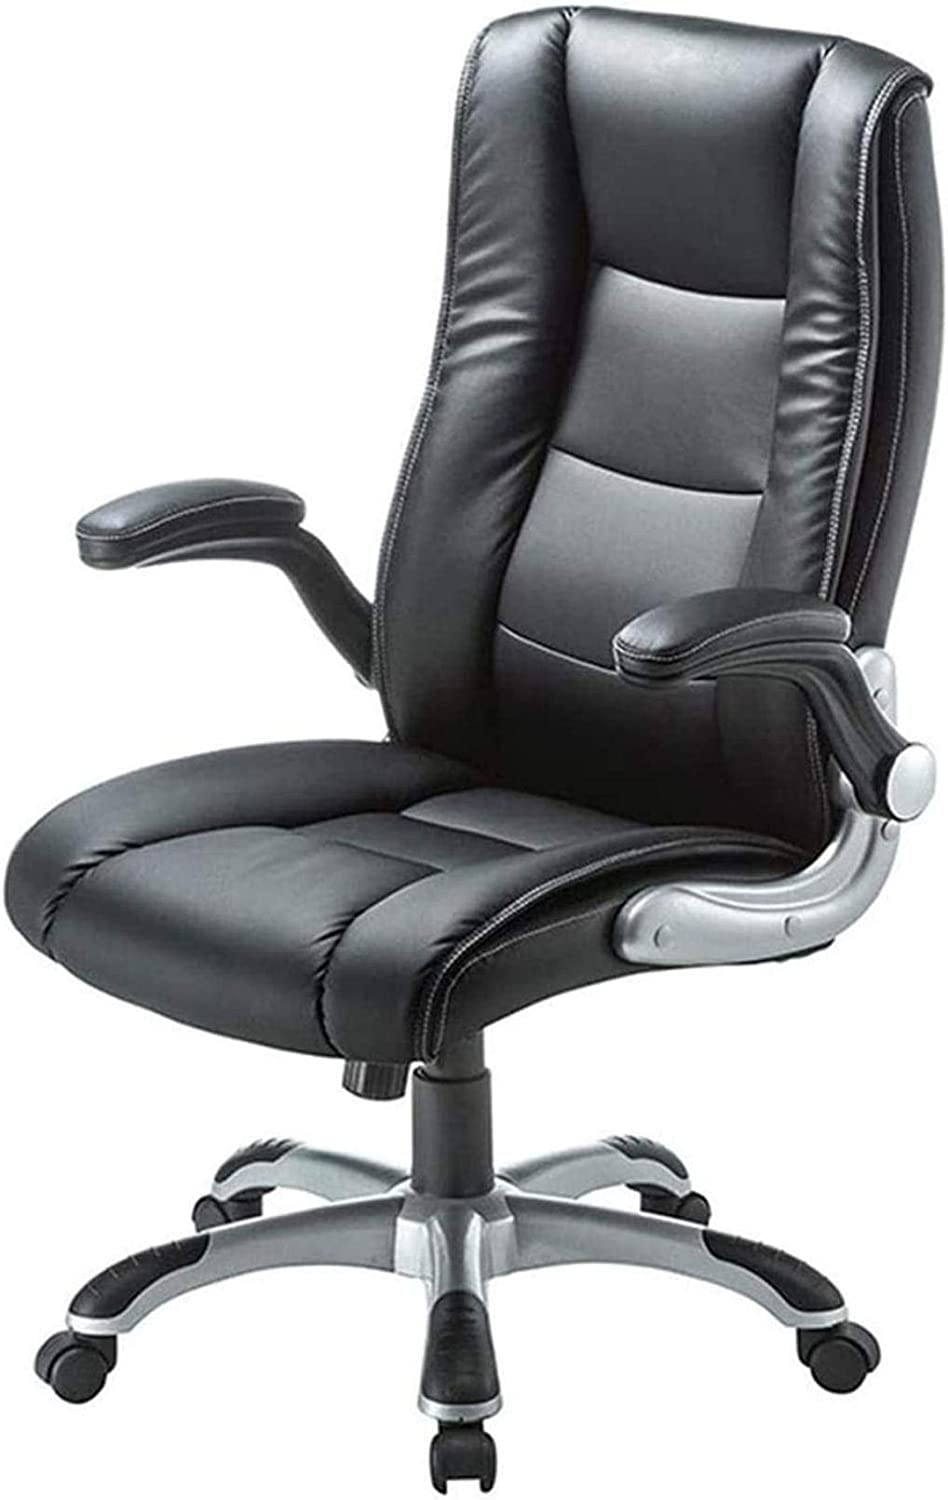 Industry No. 1 File Cabinets Armchair Office Chairs Executive E High Chair Back List price